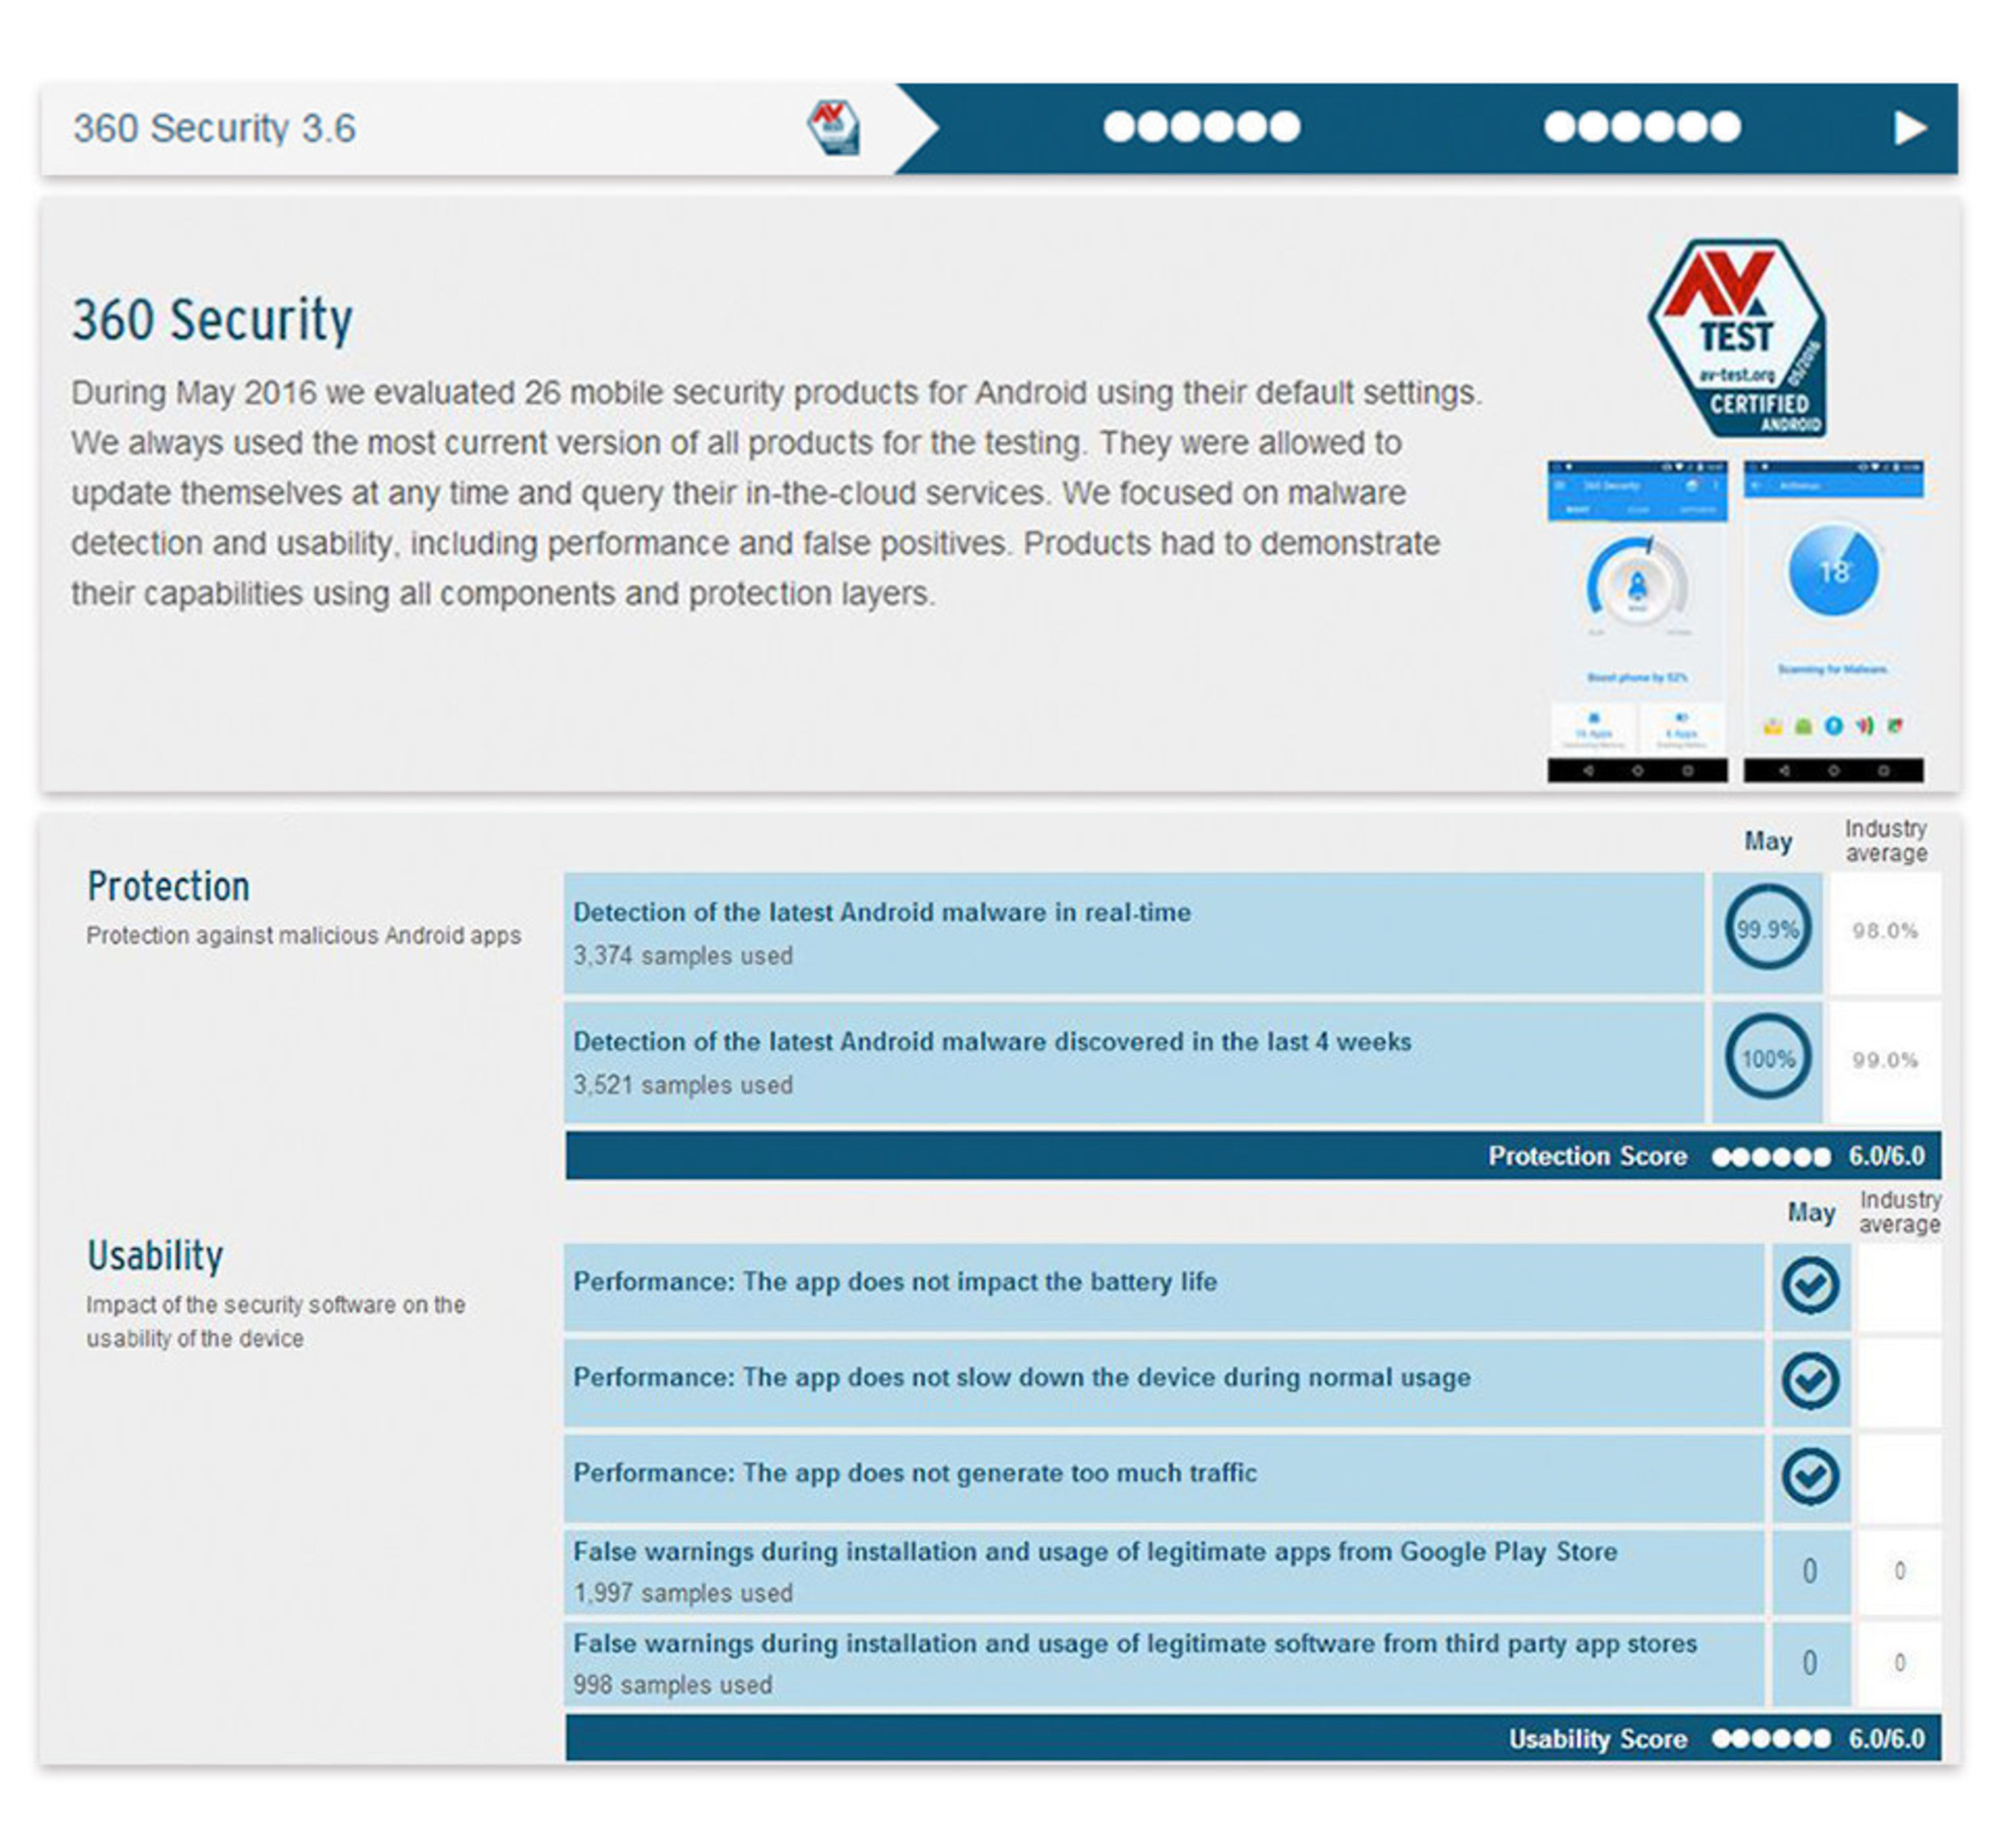 360 Security Gets Record Perfect Score on AV-TEST, Mobile Security